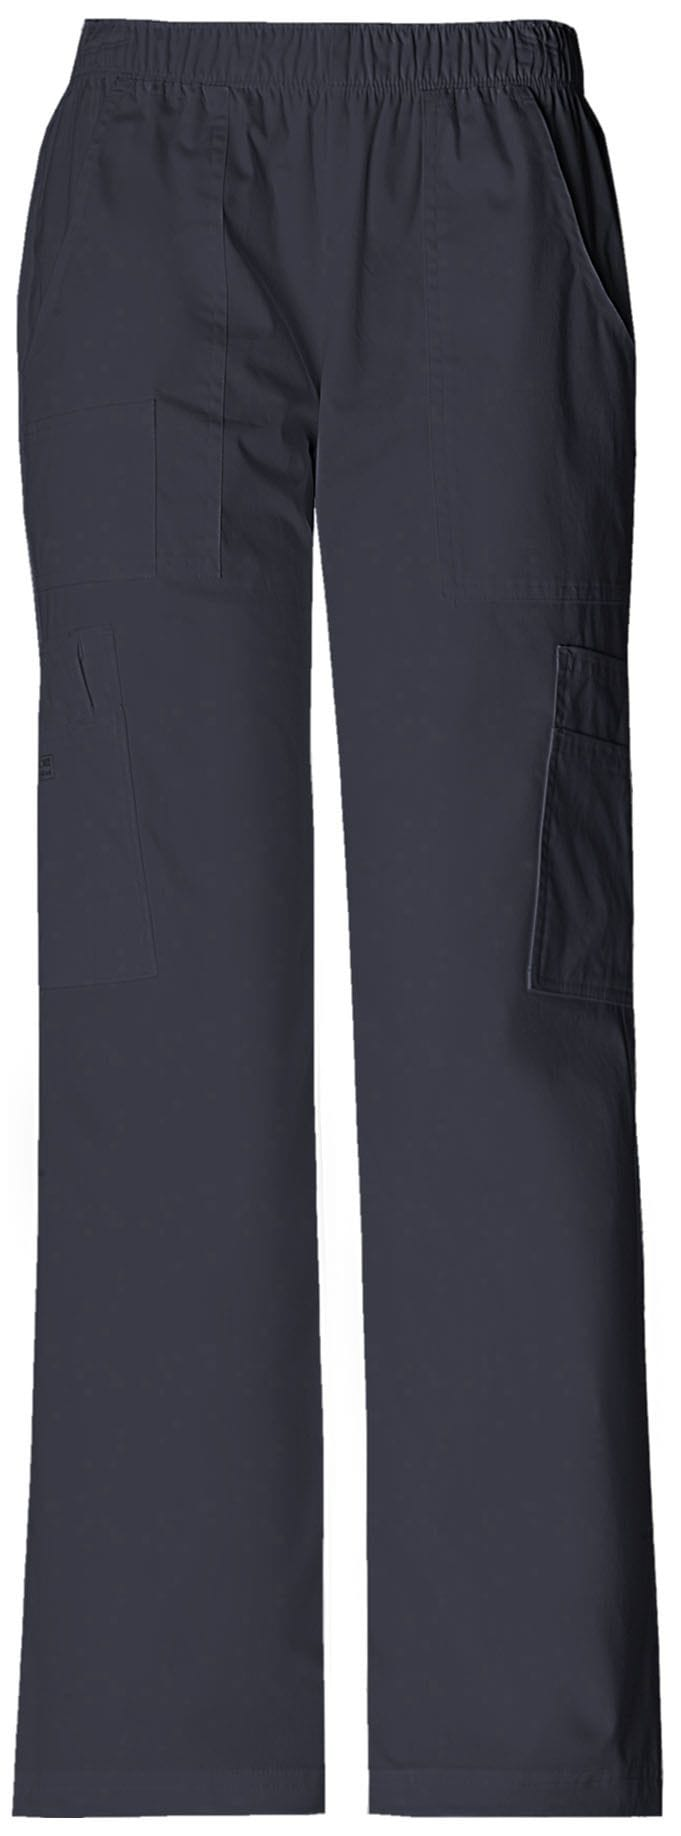 4005 PWTW Pewter Pull-on Cargo Pant